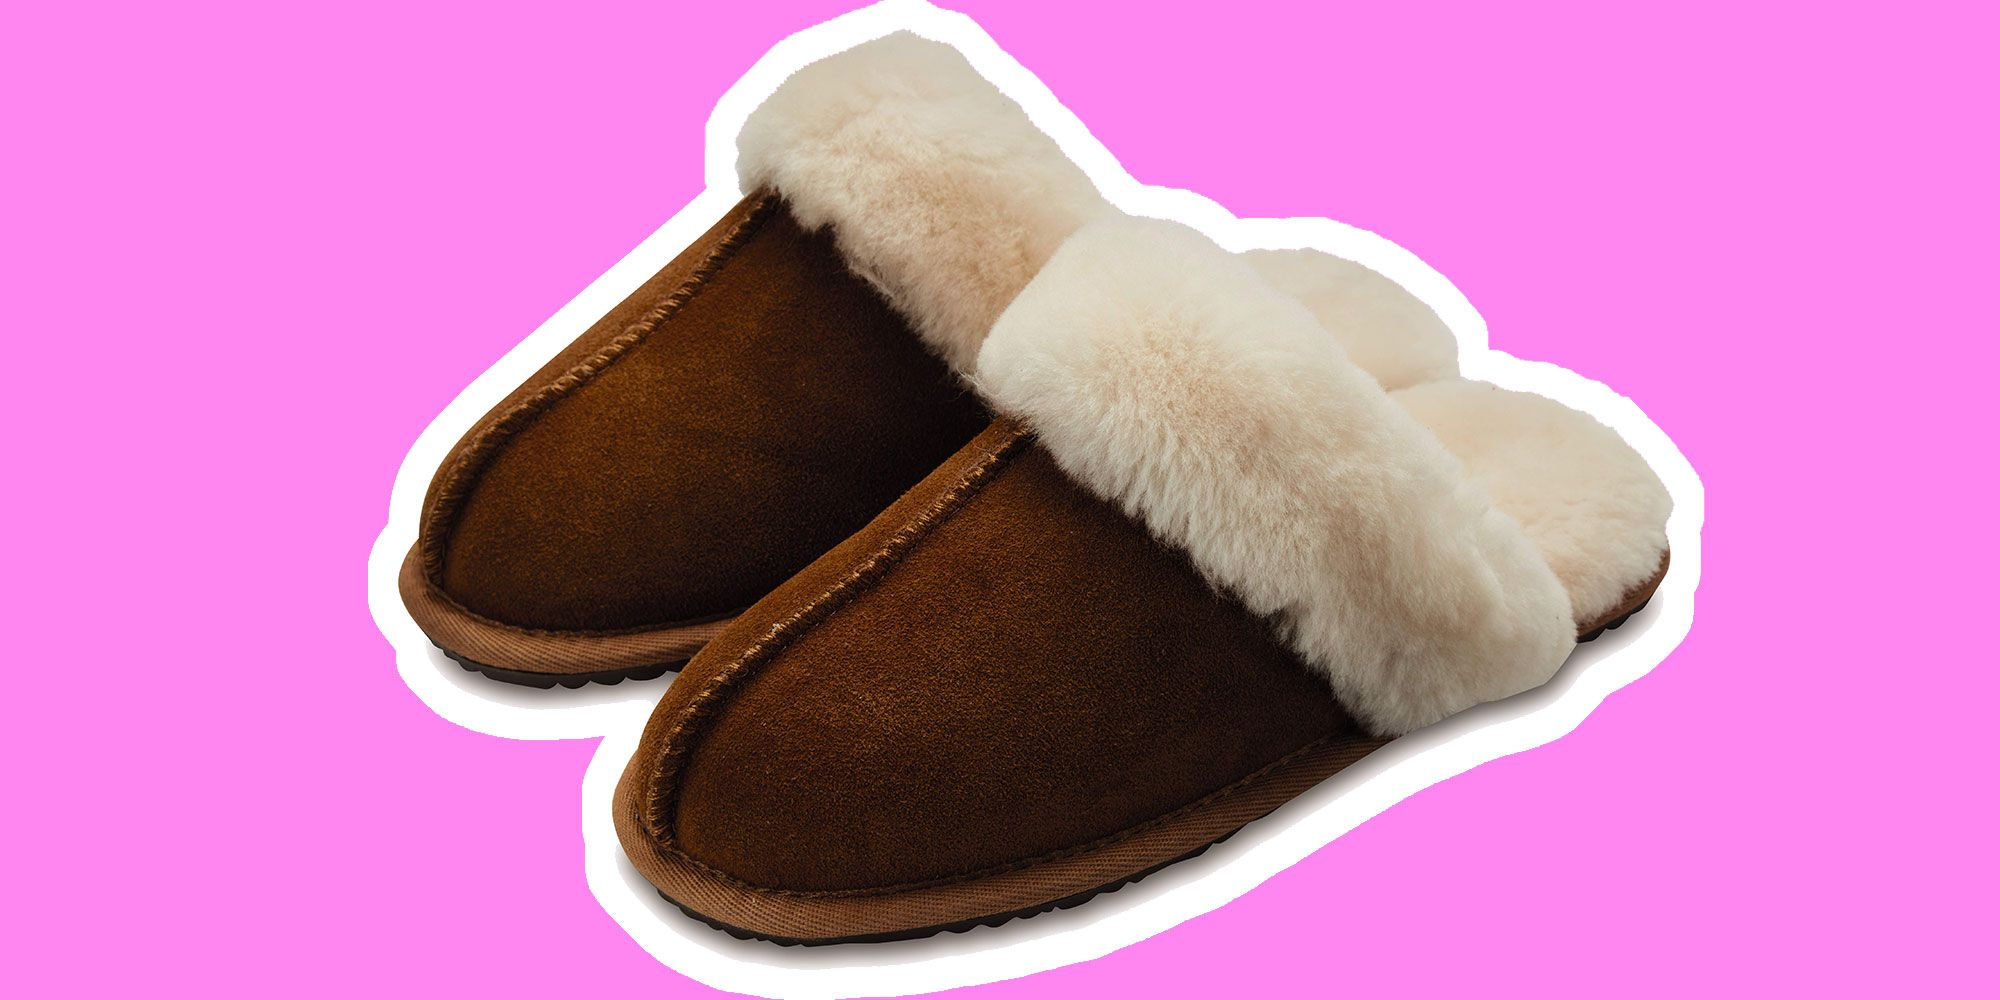 Aldi sheepskin slippers